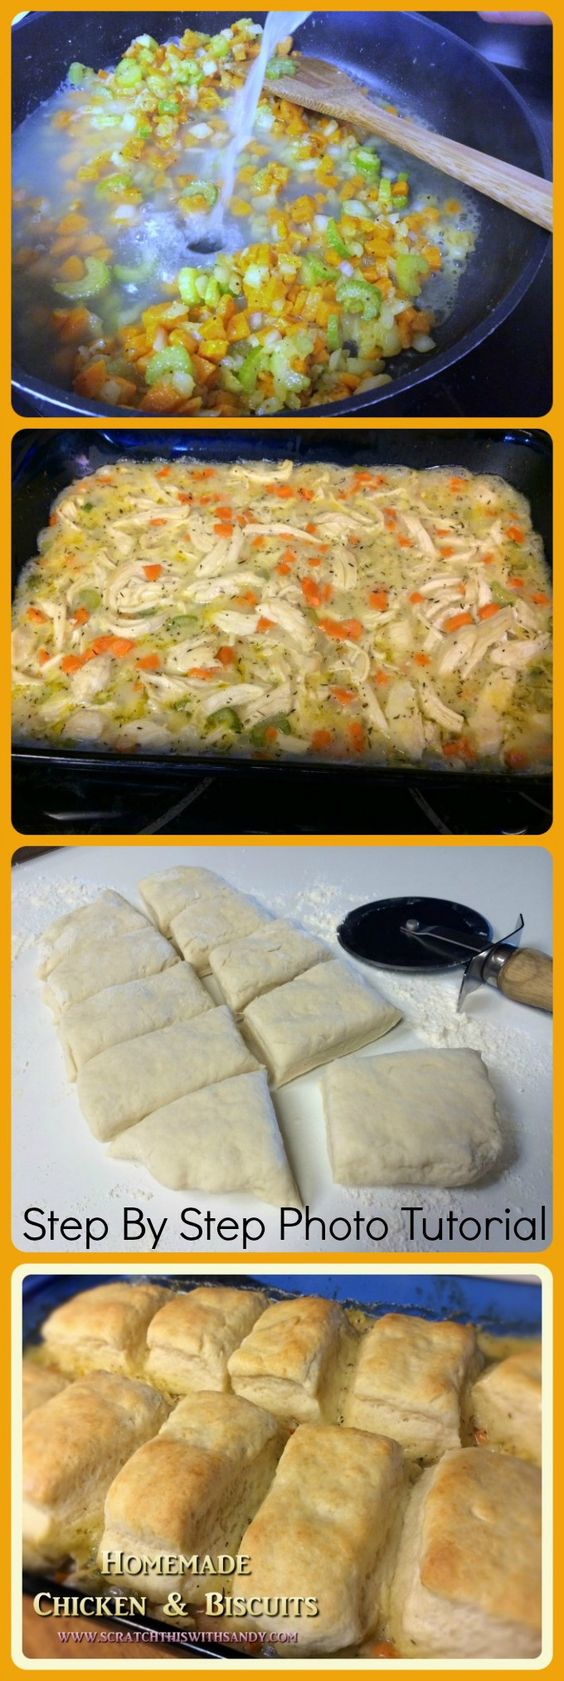 Homemade Chicken and Biscuits Step by Step Photo Tutorial All made from scratch in an hour Great comfort food